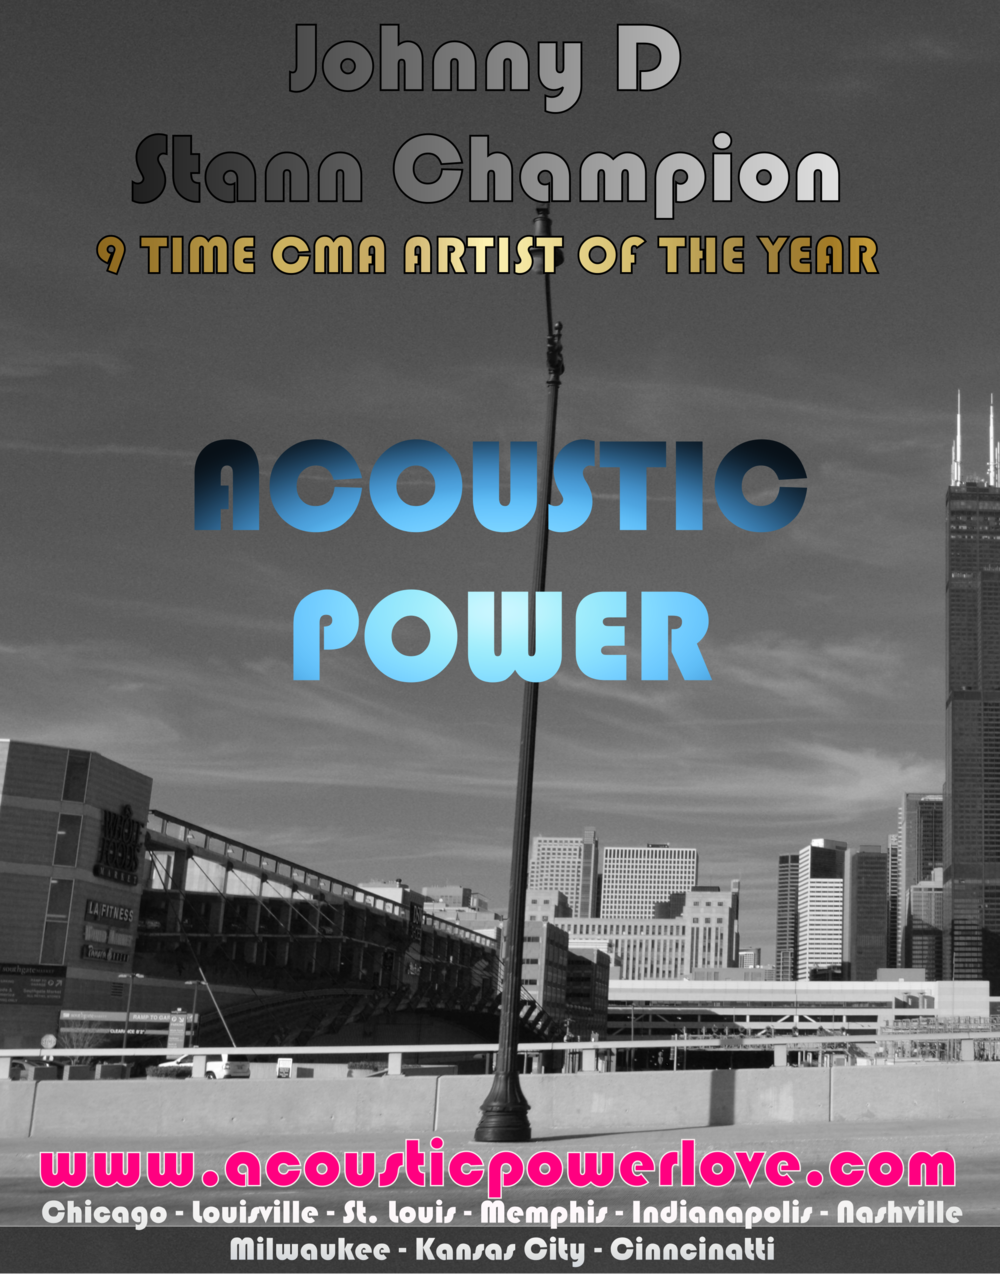 Johnny D Stann Champion Acoustic Power V2-CMA.png